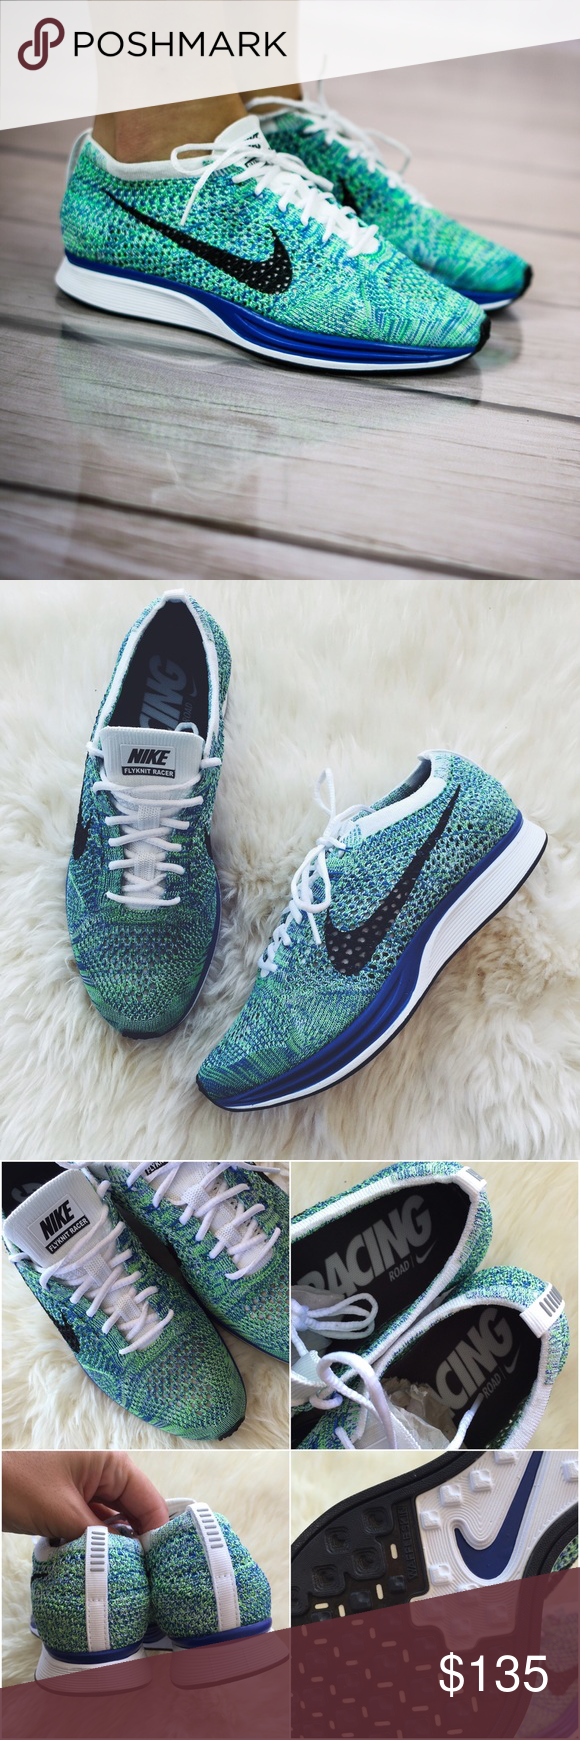 Nike Flyknit Racer Sneakers •Flyknit racer sneakers, tranquil edition.  •Unisex sizing: Women's 7 = Men's 5.5  •New in box (no lid).  •NO TRADES/HOLDS/PAYPAL/MERC/VINTED/NONSENSE. Nike Shoes Sneakers